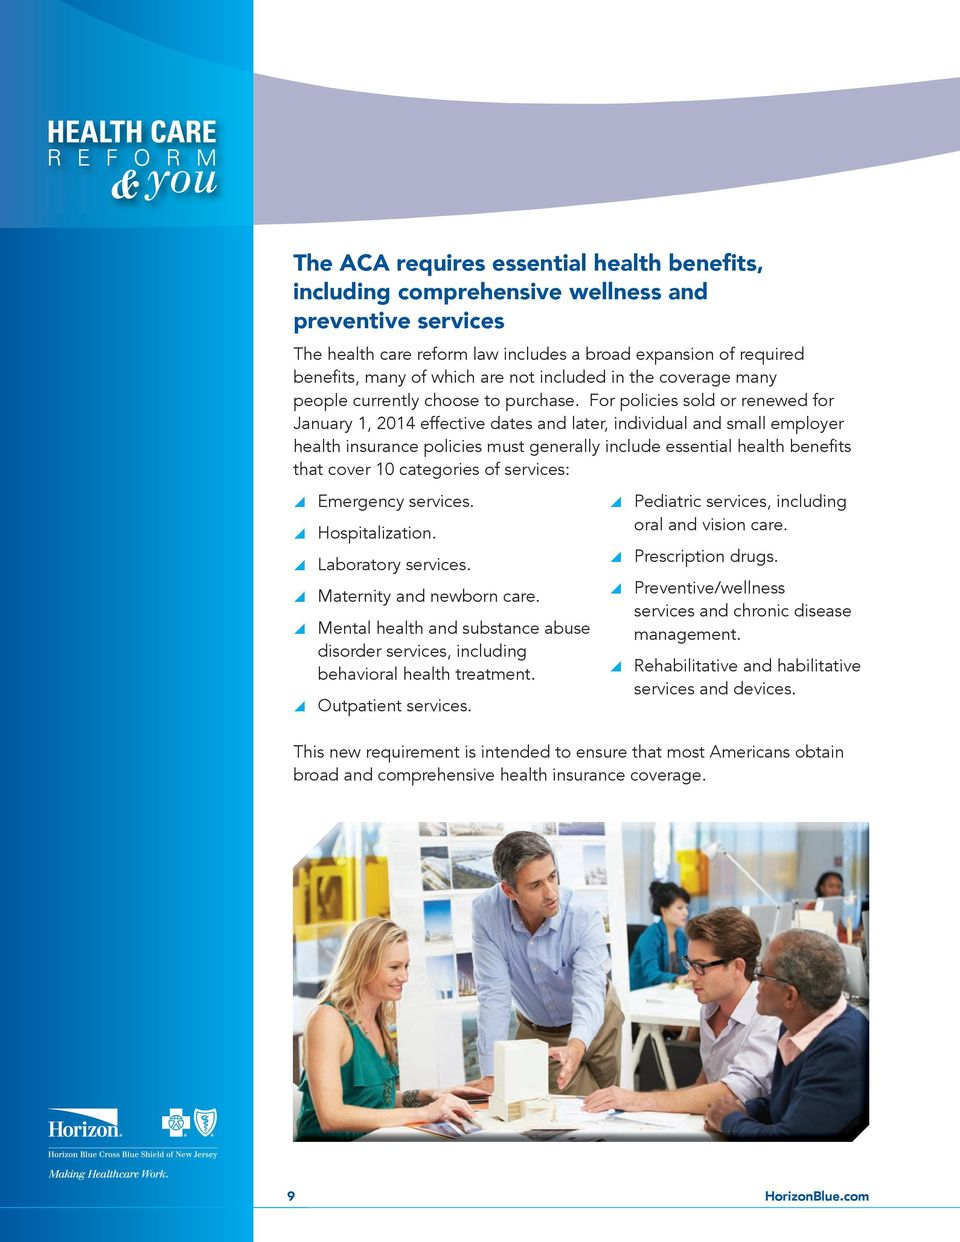 For policies sold or renewed for January 1, 2014 effective dates and later, individual and small employer health insurance policies must generally include essential health benefits that cover 10